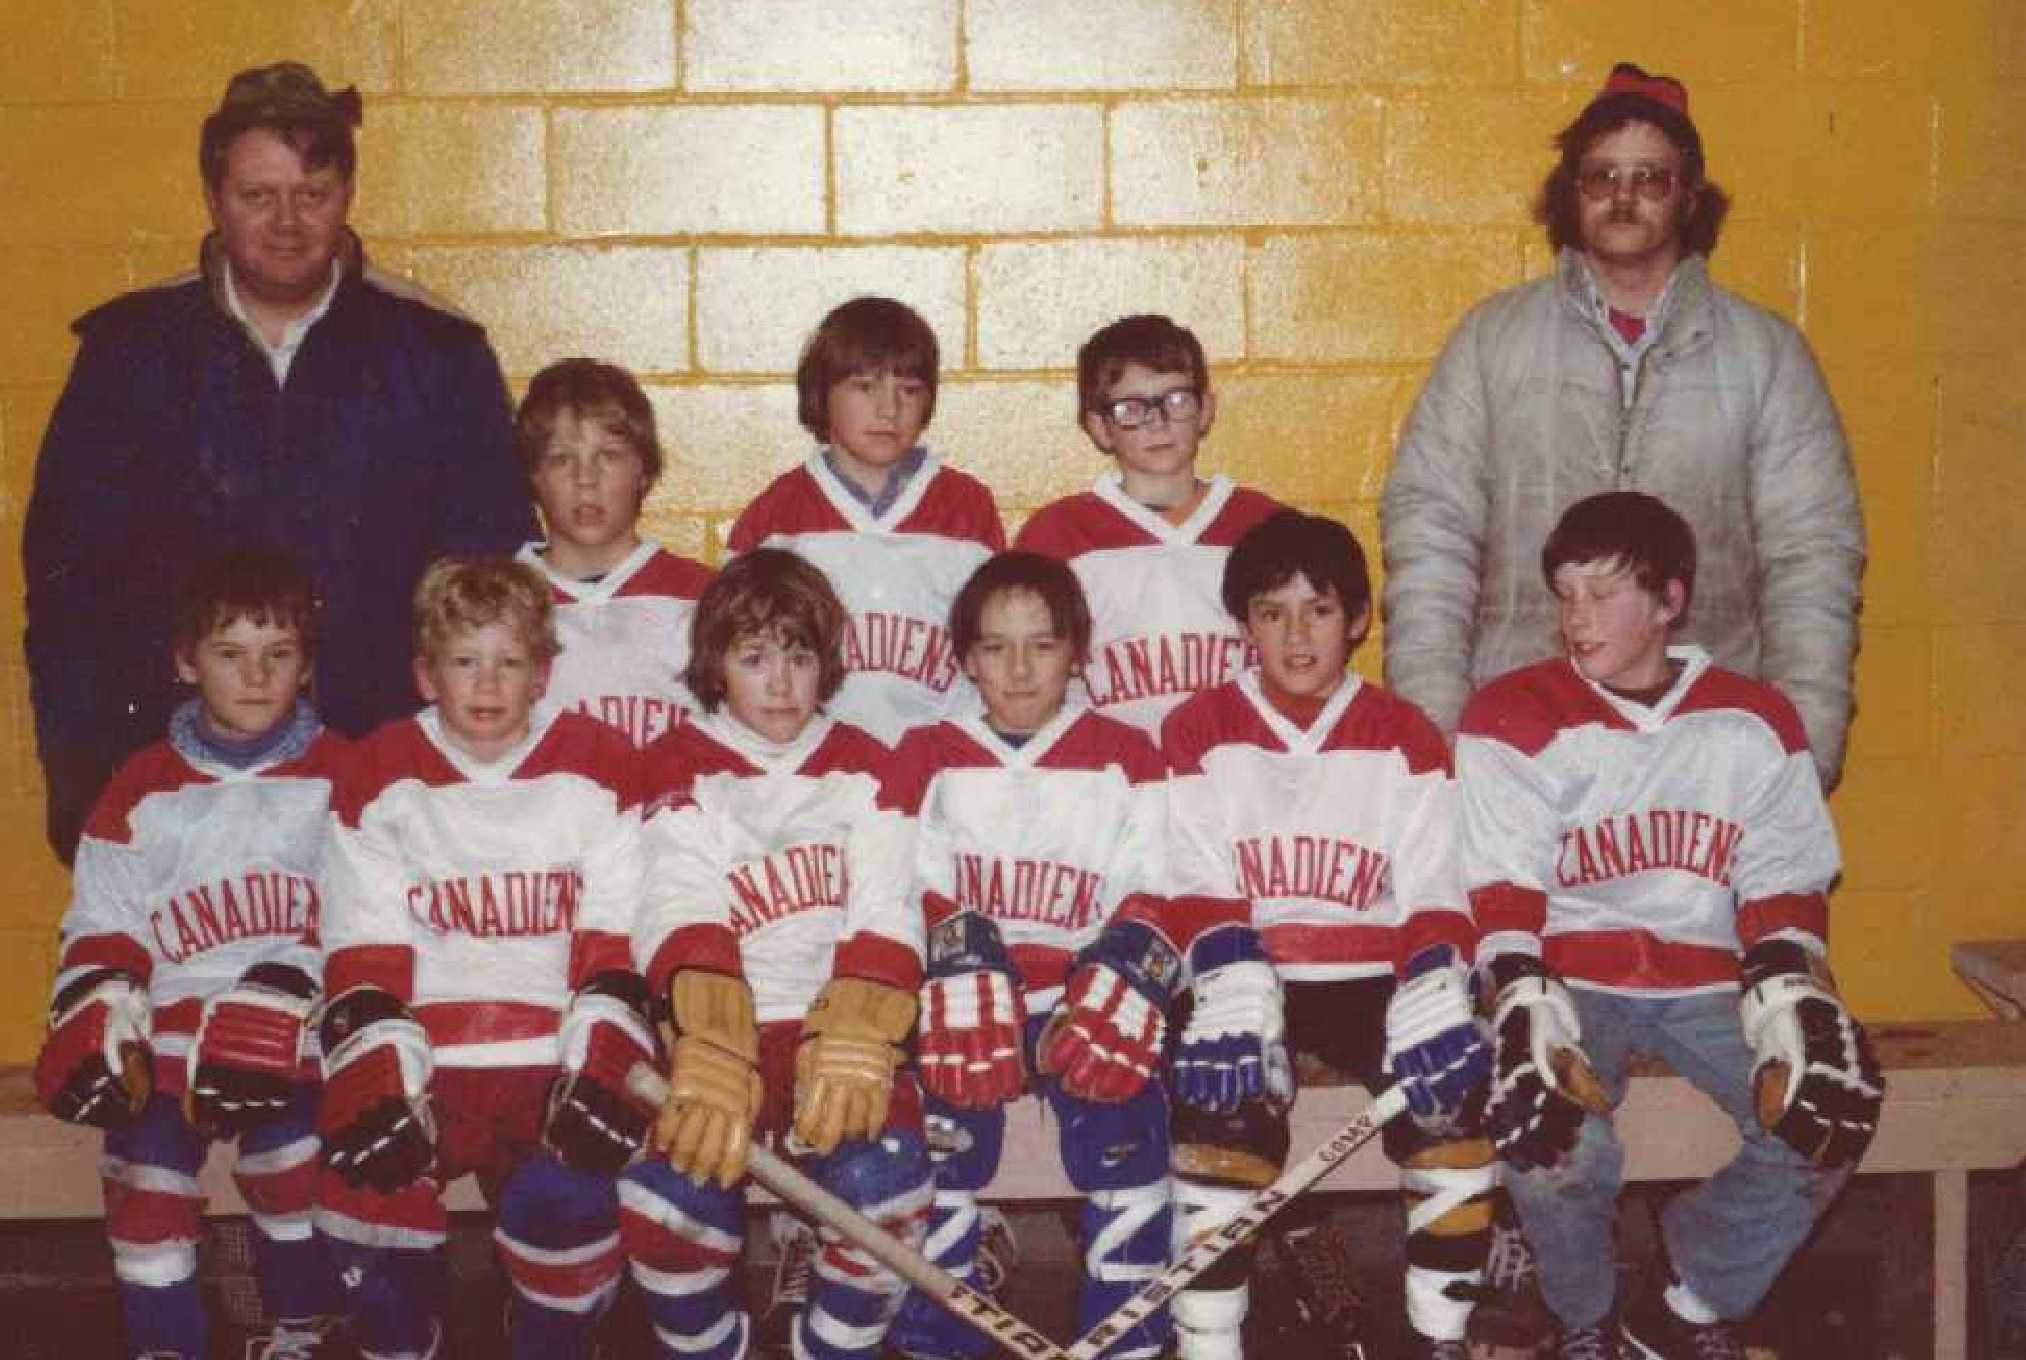 Warroad Mites team in 1978. Coaches are Frank Marvin (L) and Waag Erickson (R). Players, front row (L to R): Dana Estling, Dan Marvin, Chad Erickson, Joe Biondi, Todd Powassin, Mark Dahlberg. Back row (L to R): Keith Corneliusen, Mark Janzen,